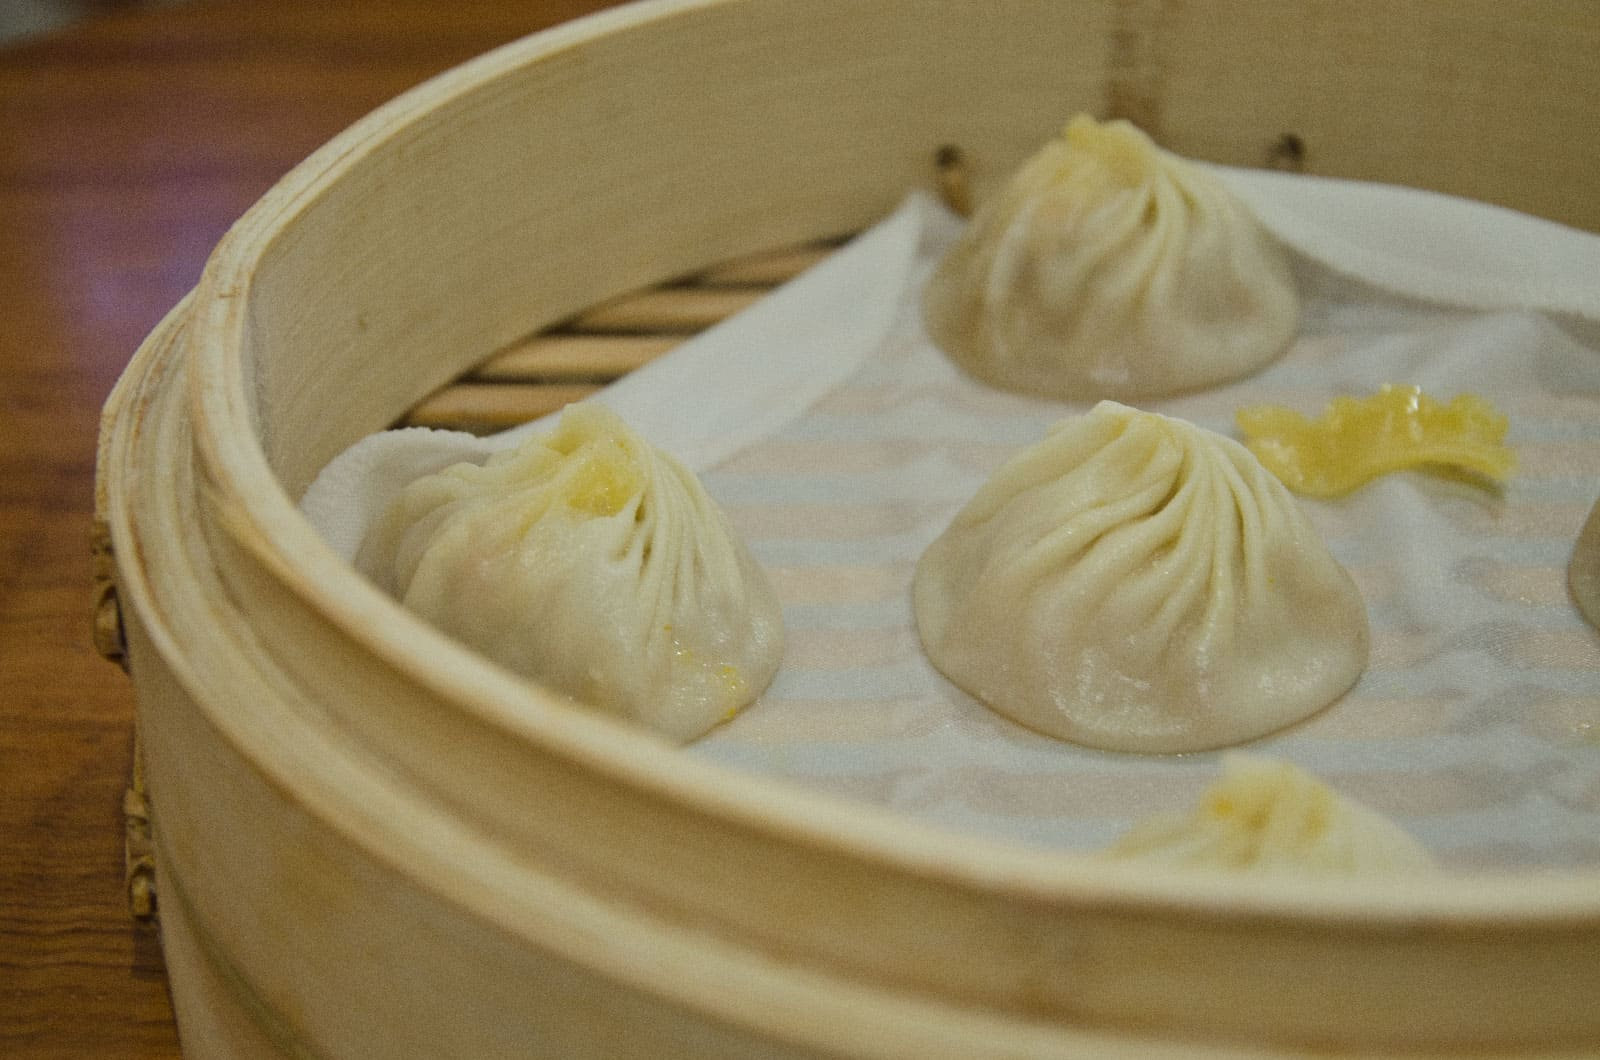 Dumplings at Din Tai Fung in Taipei 101, Taipei, Taiwan